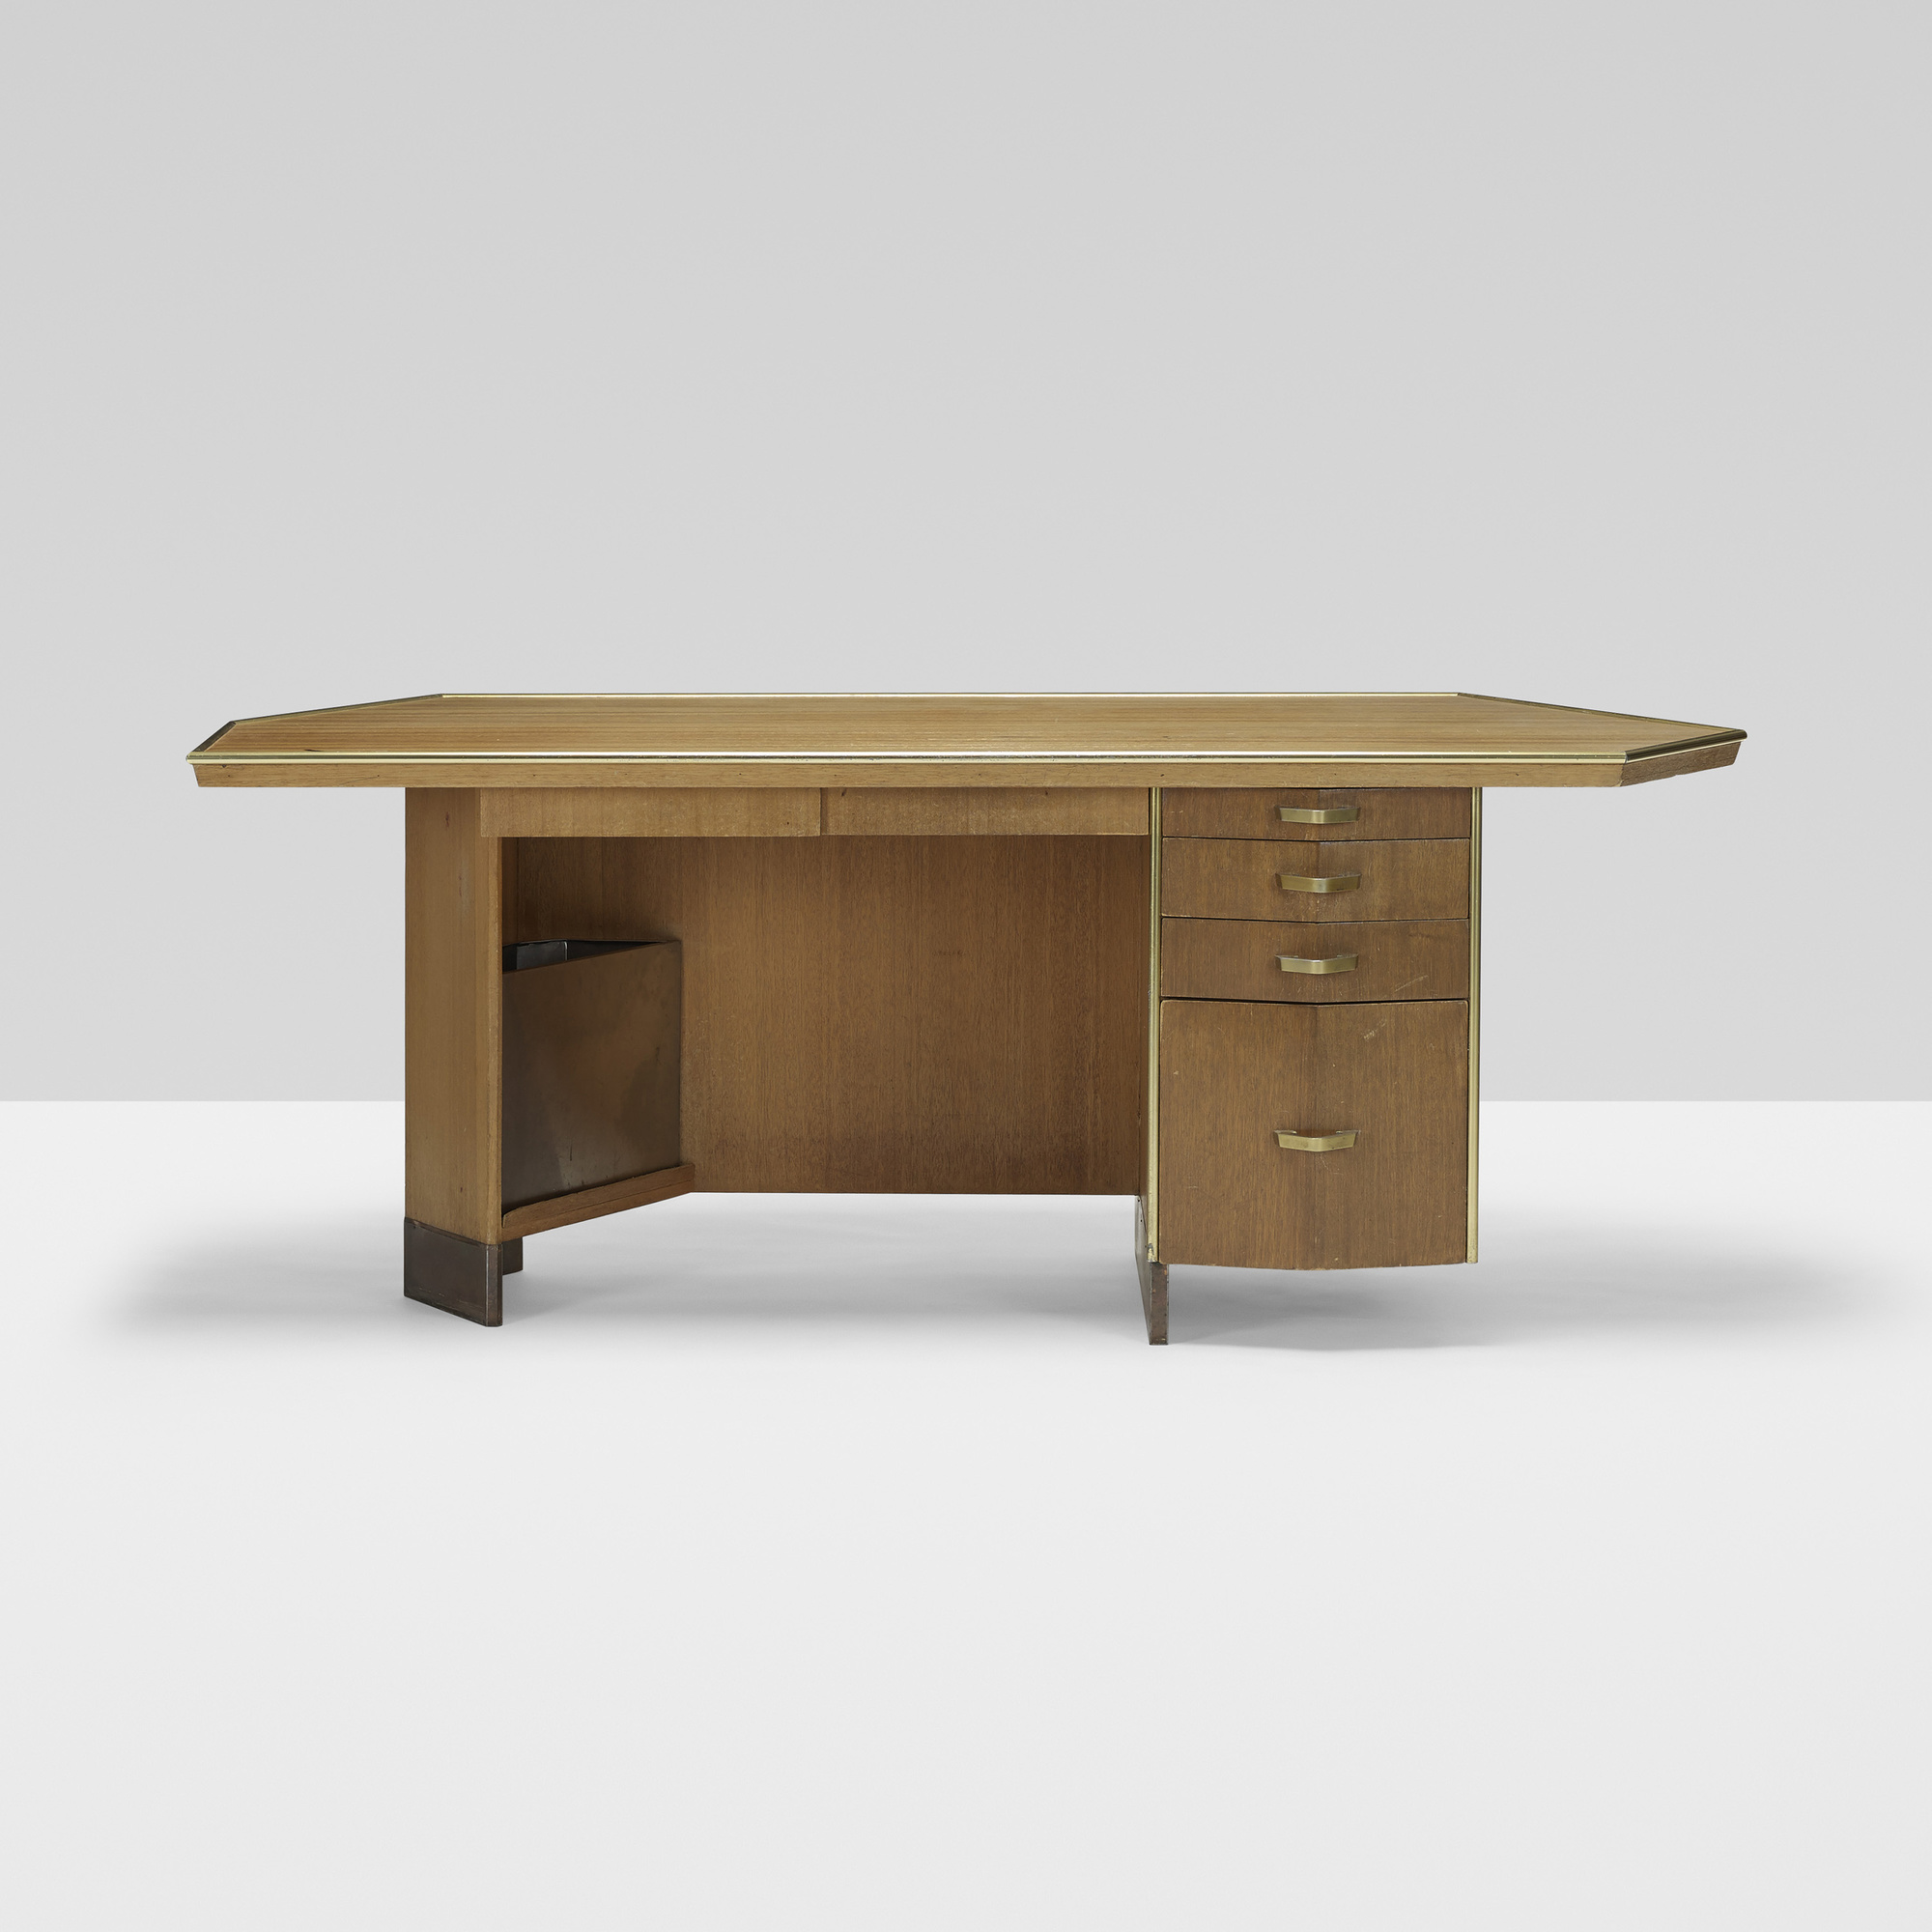 182: FRANK LLOYD WRIGHT, desk with wastebasket from Price Tower, Bartlesville, Oklahoma